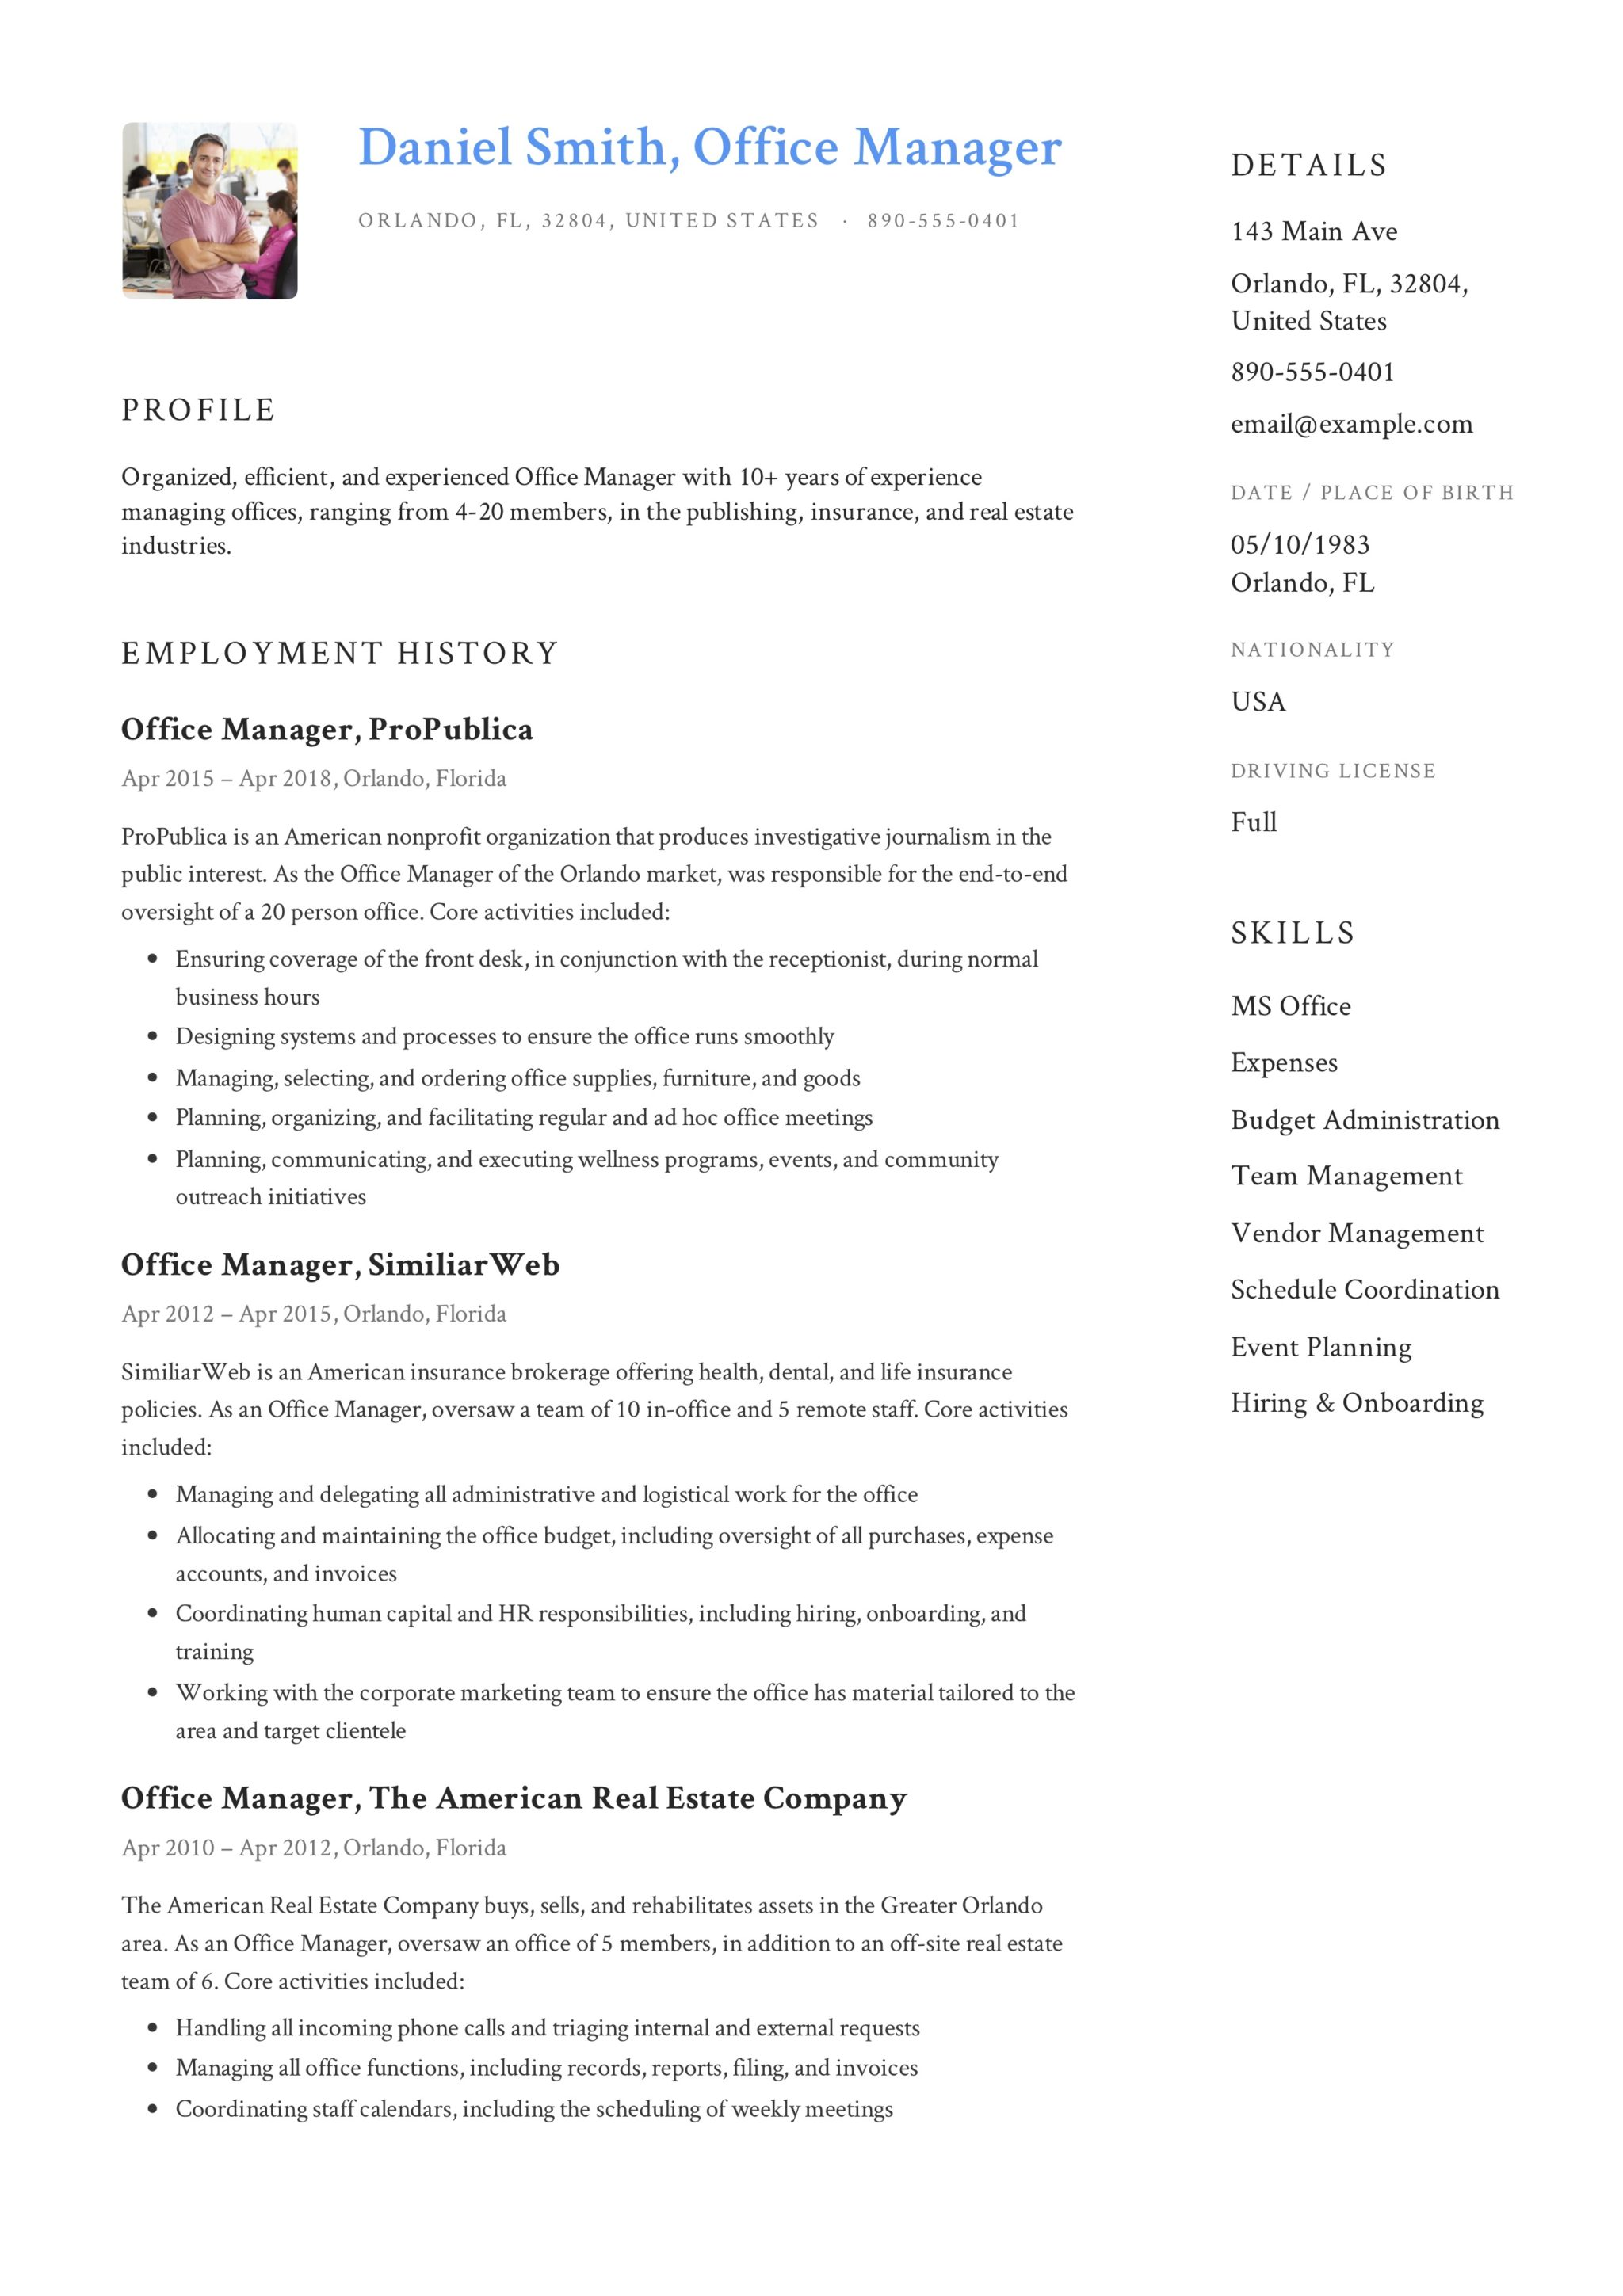 Daniel Smith Resume Office Manager